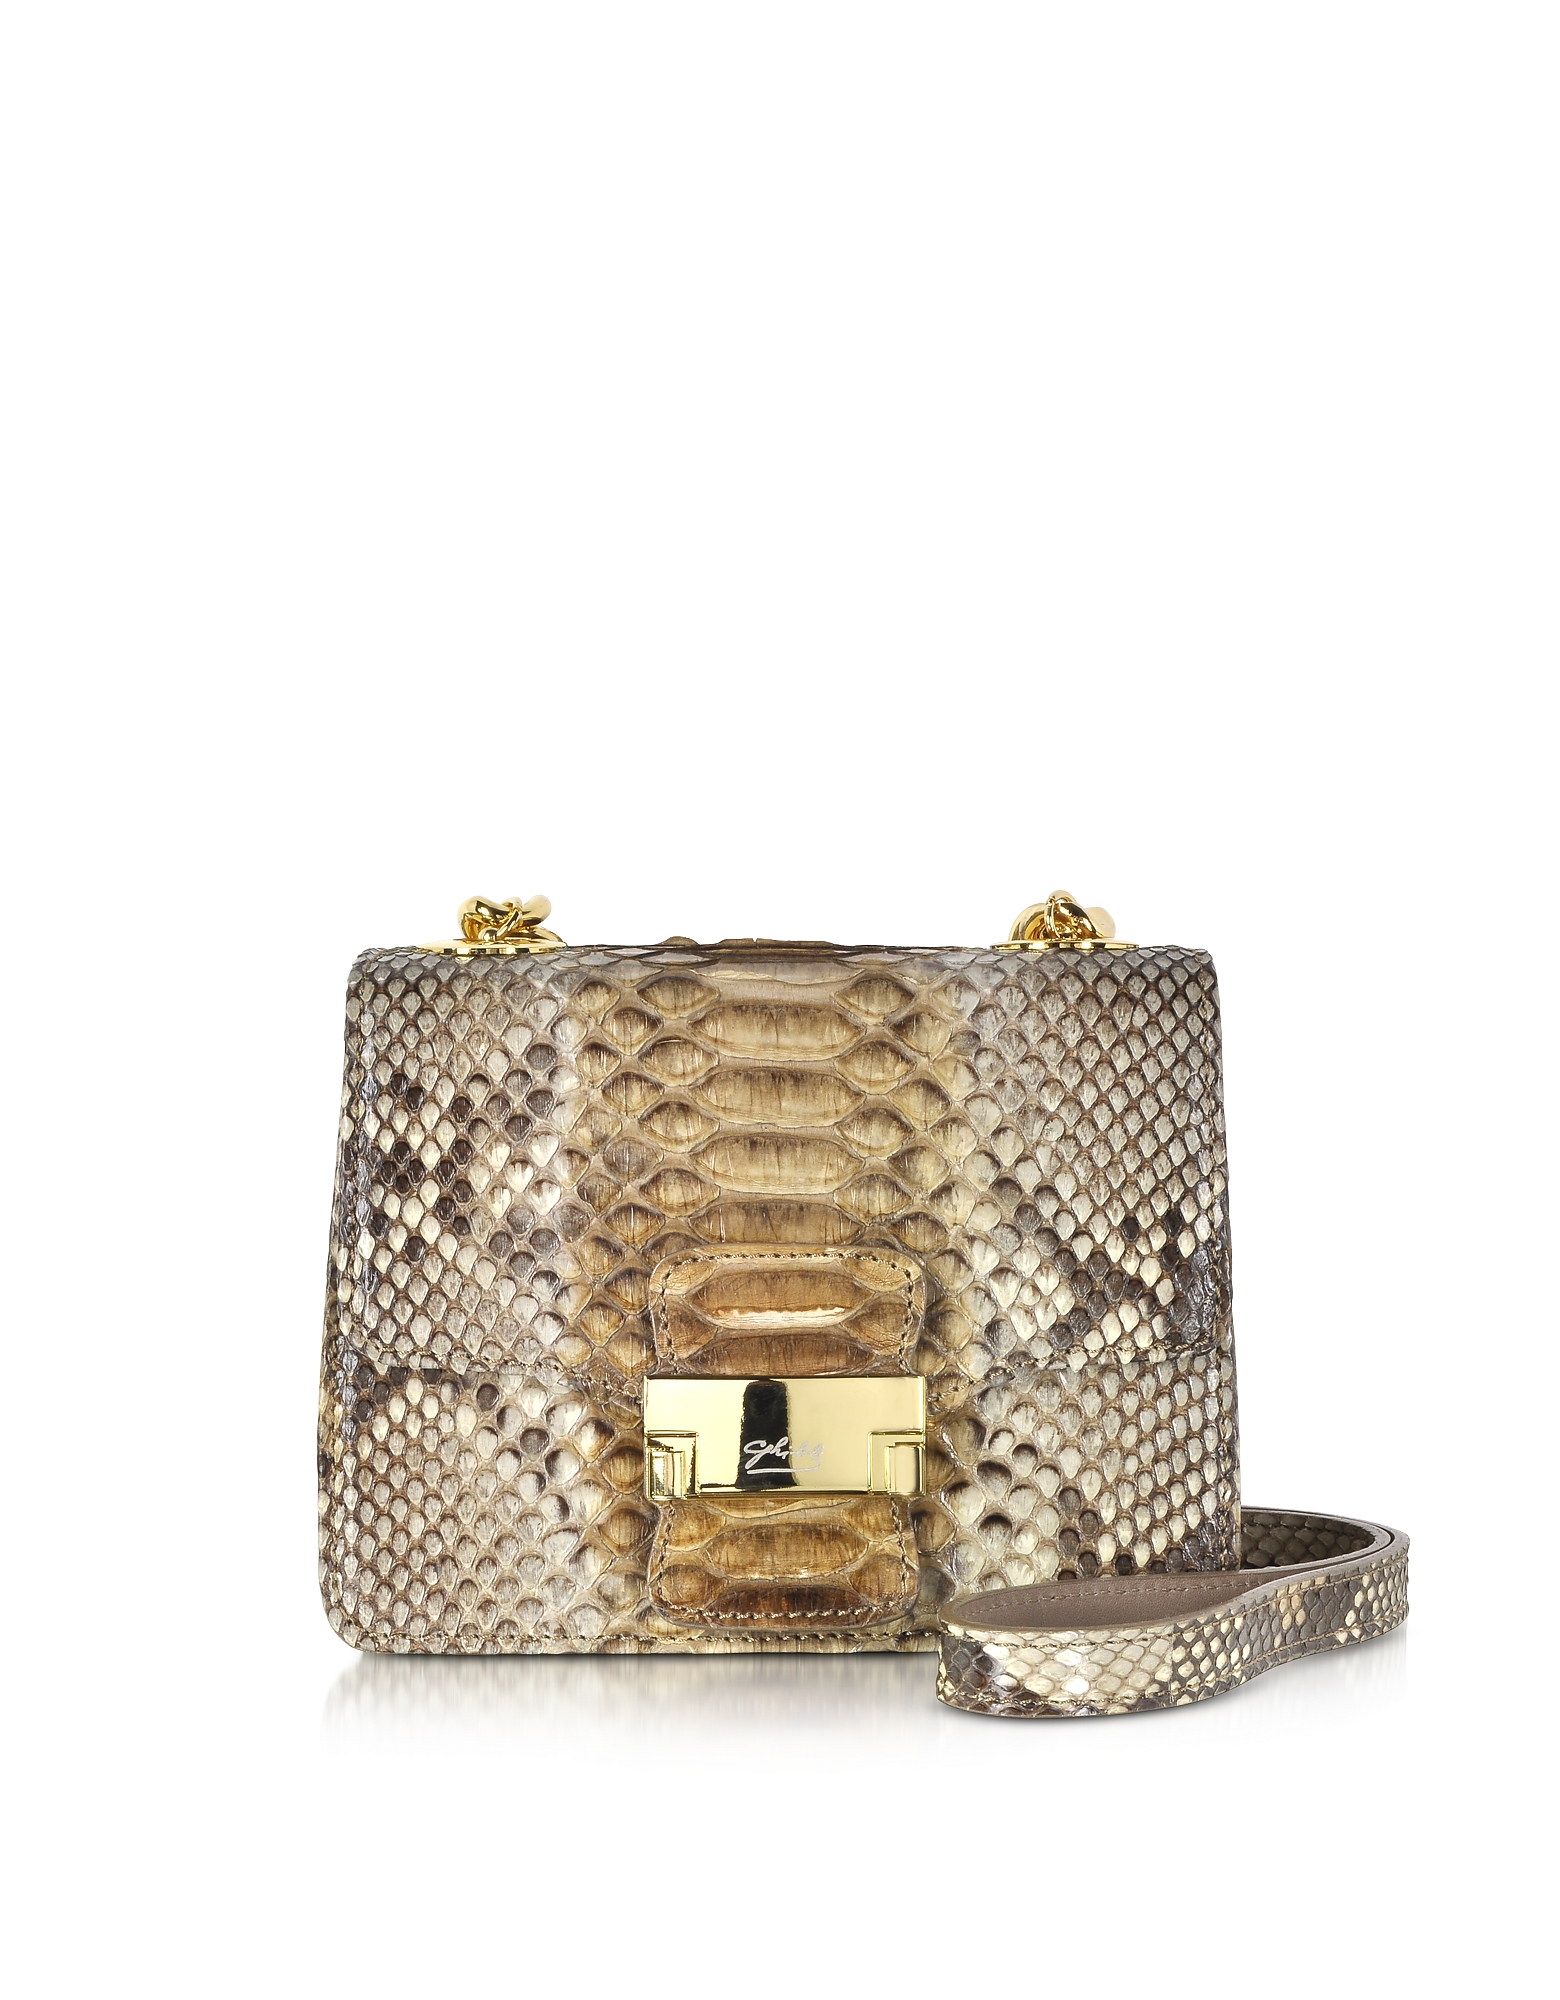 Ghibli Handbags, Brown Python Mini Crossbody Bag